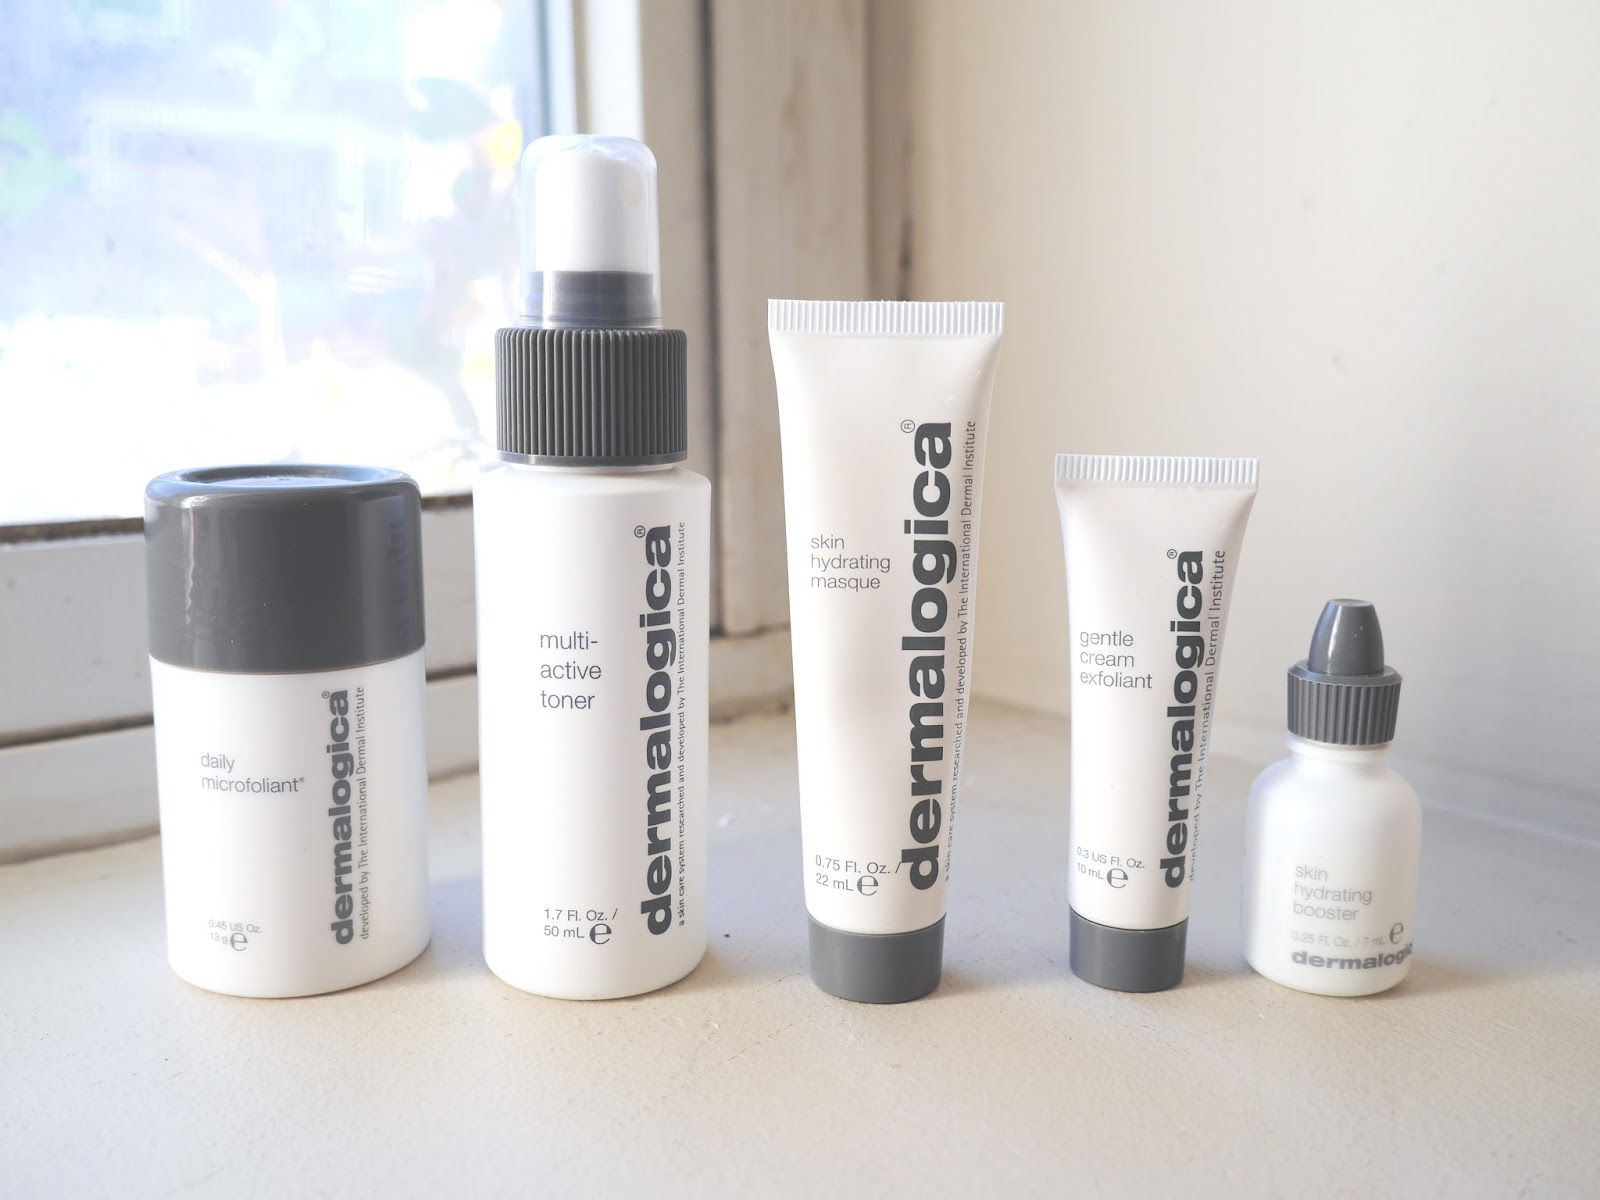 dermalogica skin hydrating masque review